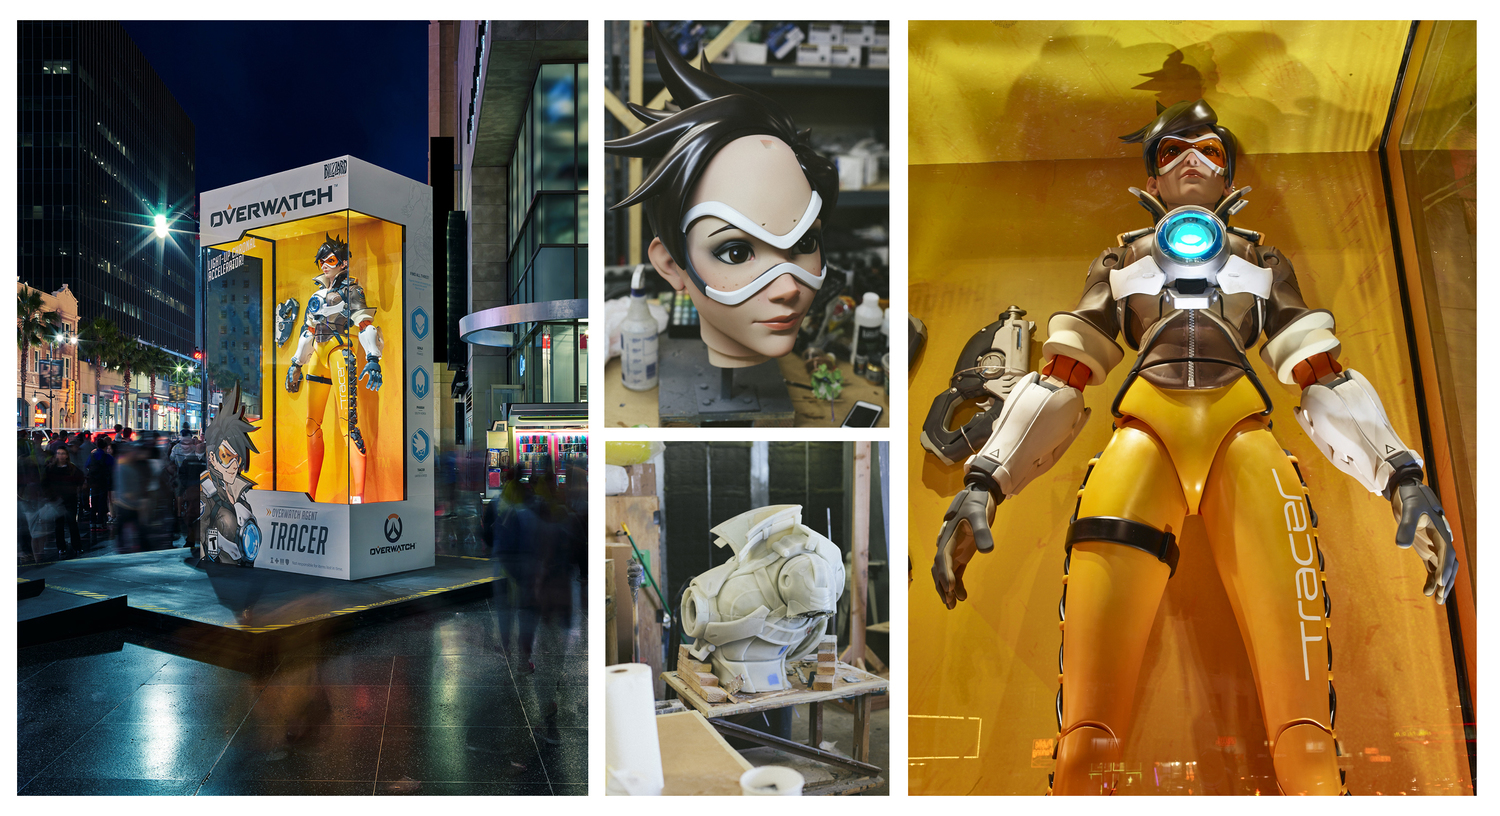 Tracer in Hollywood, USA